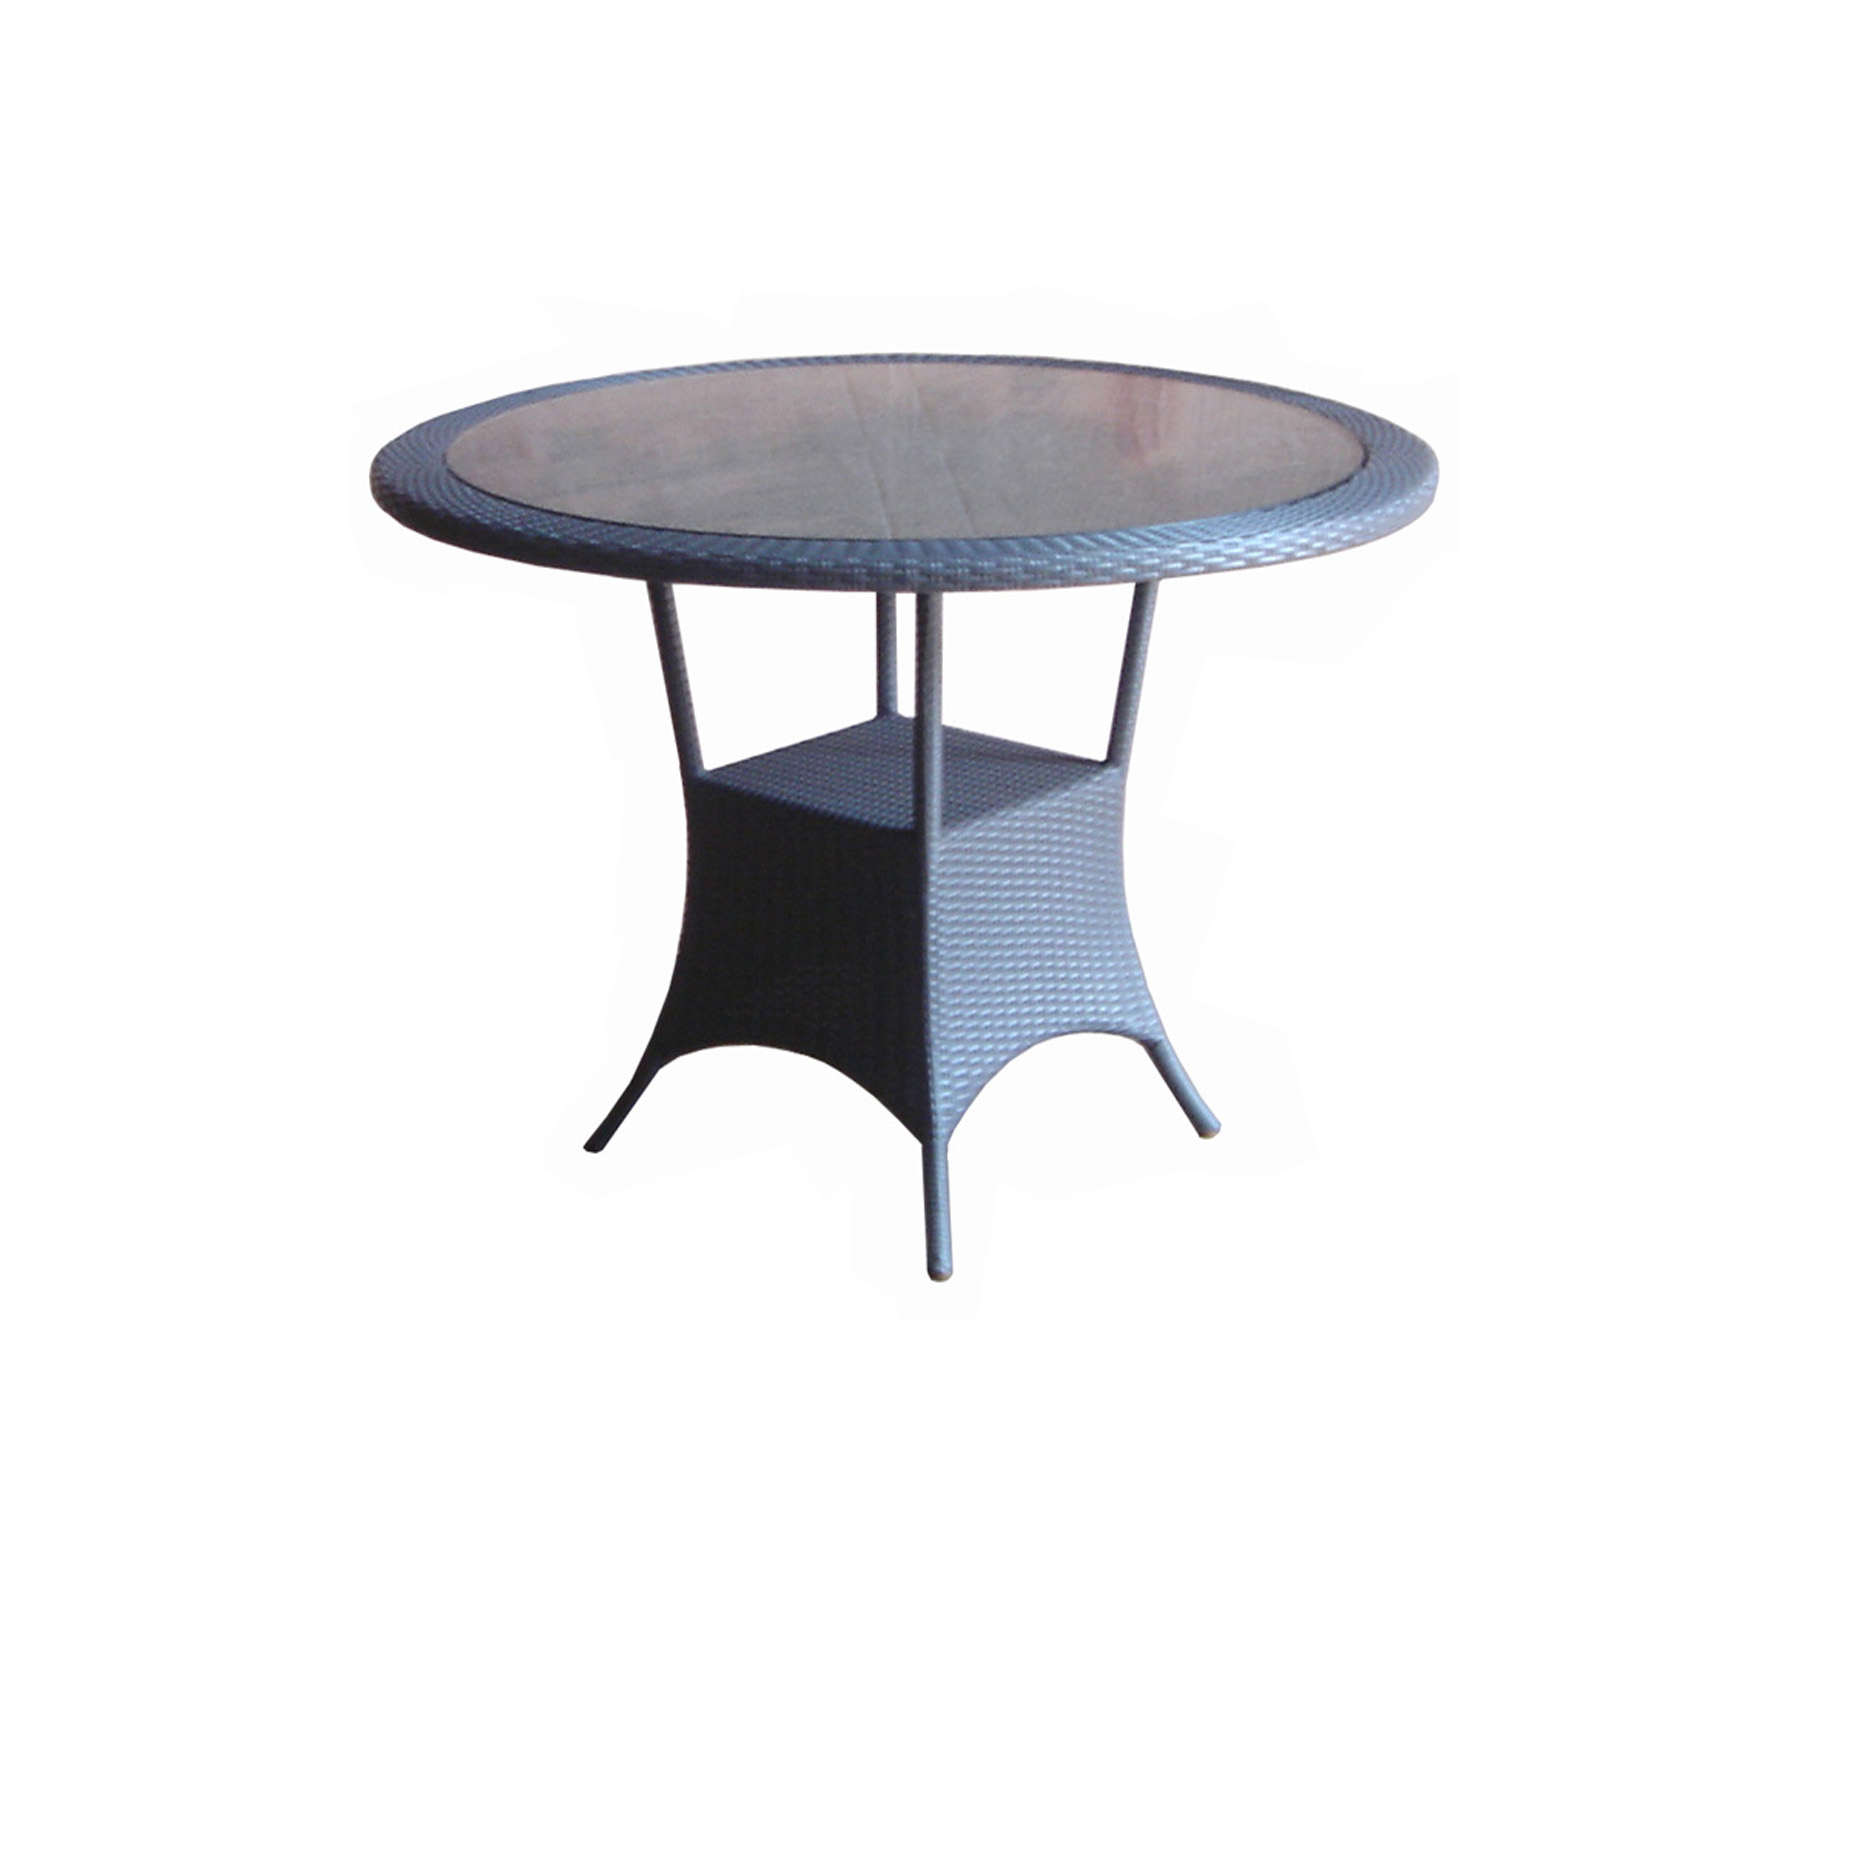 Rattan Table Round Glass Top. 🔍. Synth_Rattan_Table_Round_Glass_Top